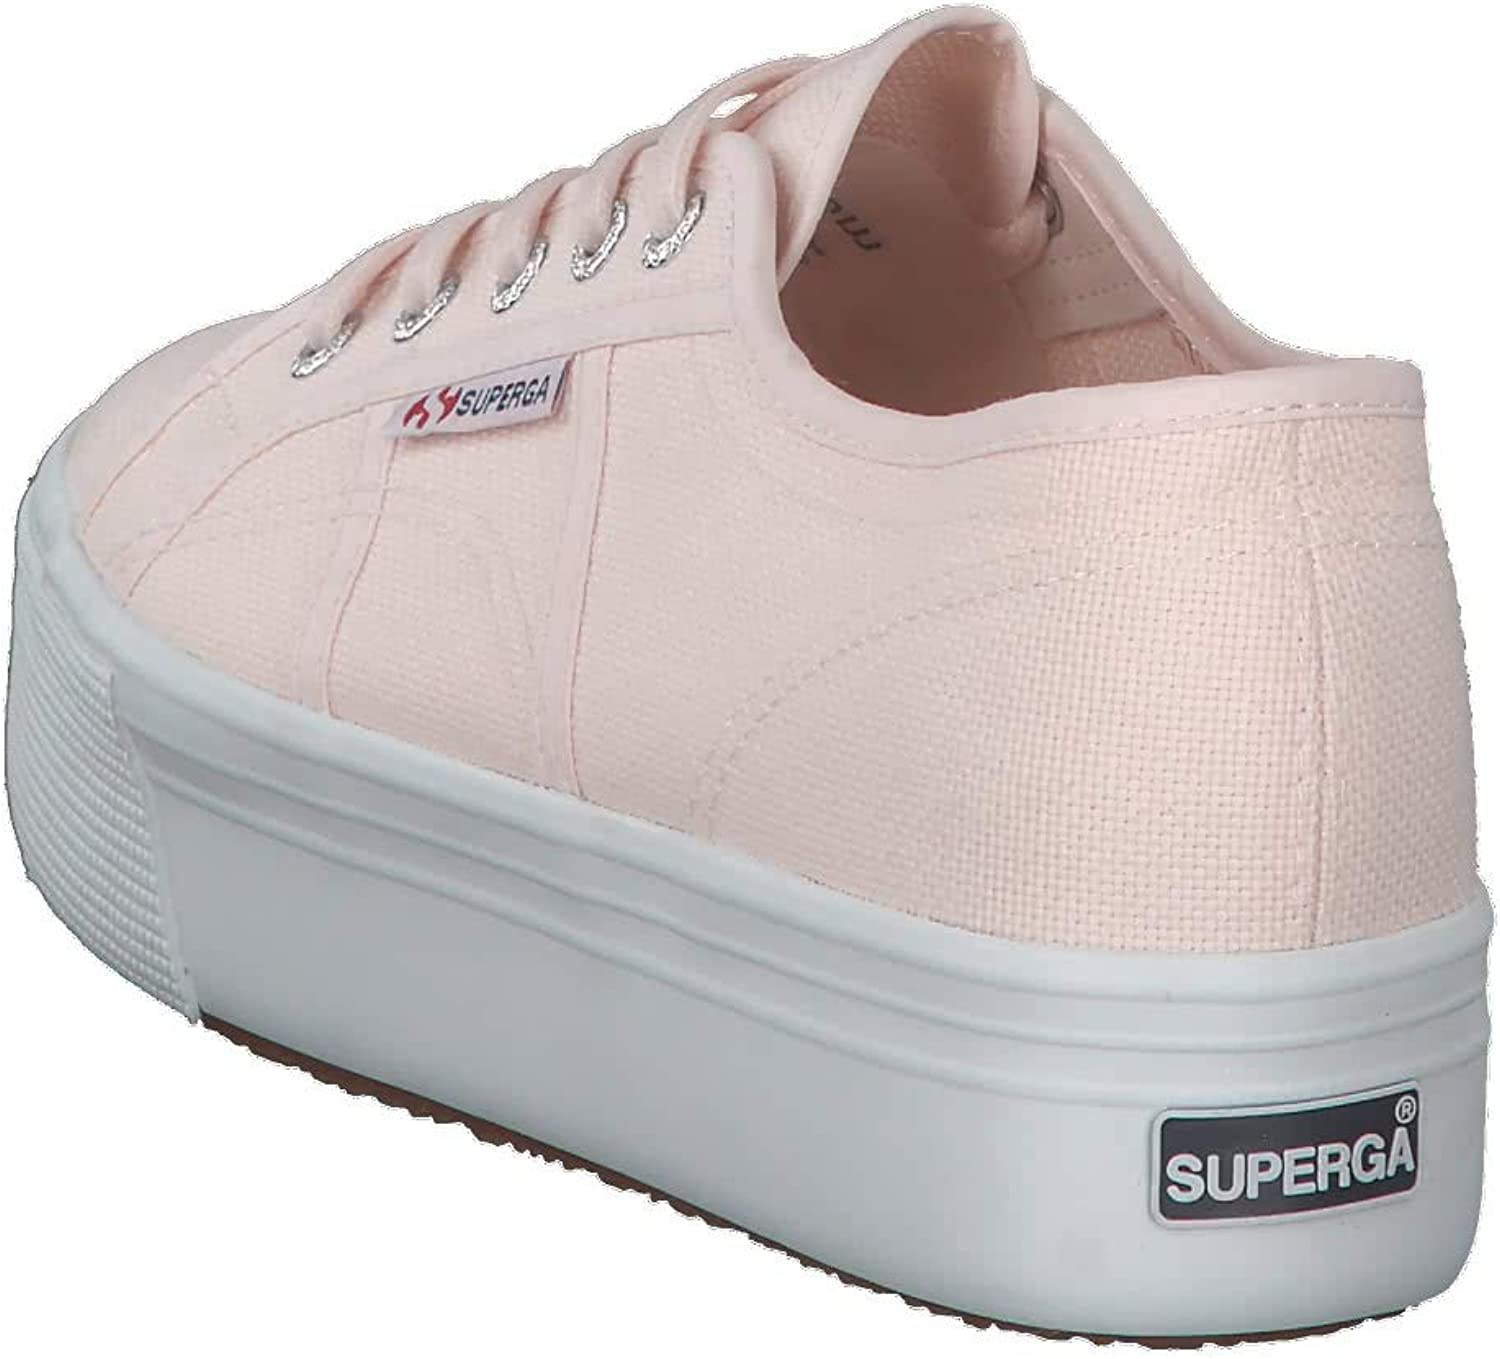 Superga 2790 Cotw Linea Up and Down, Sneakers Basses femme Rose Rosa 2